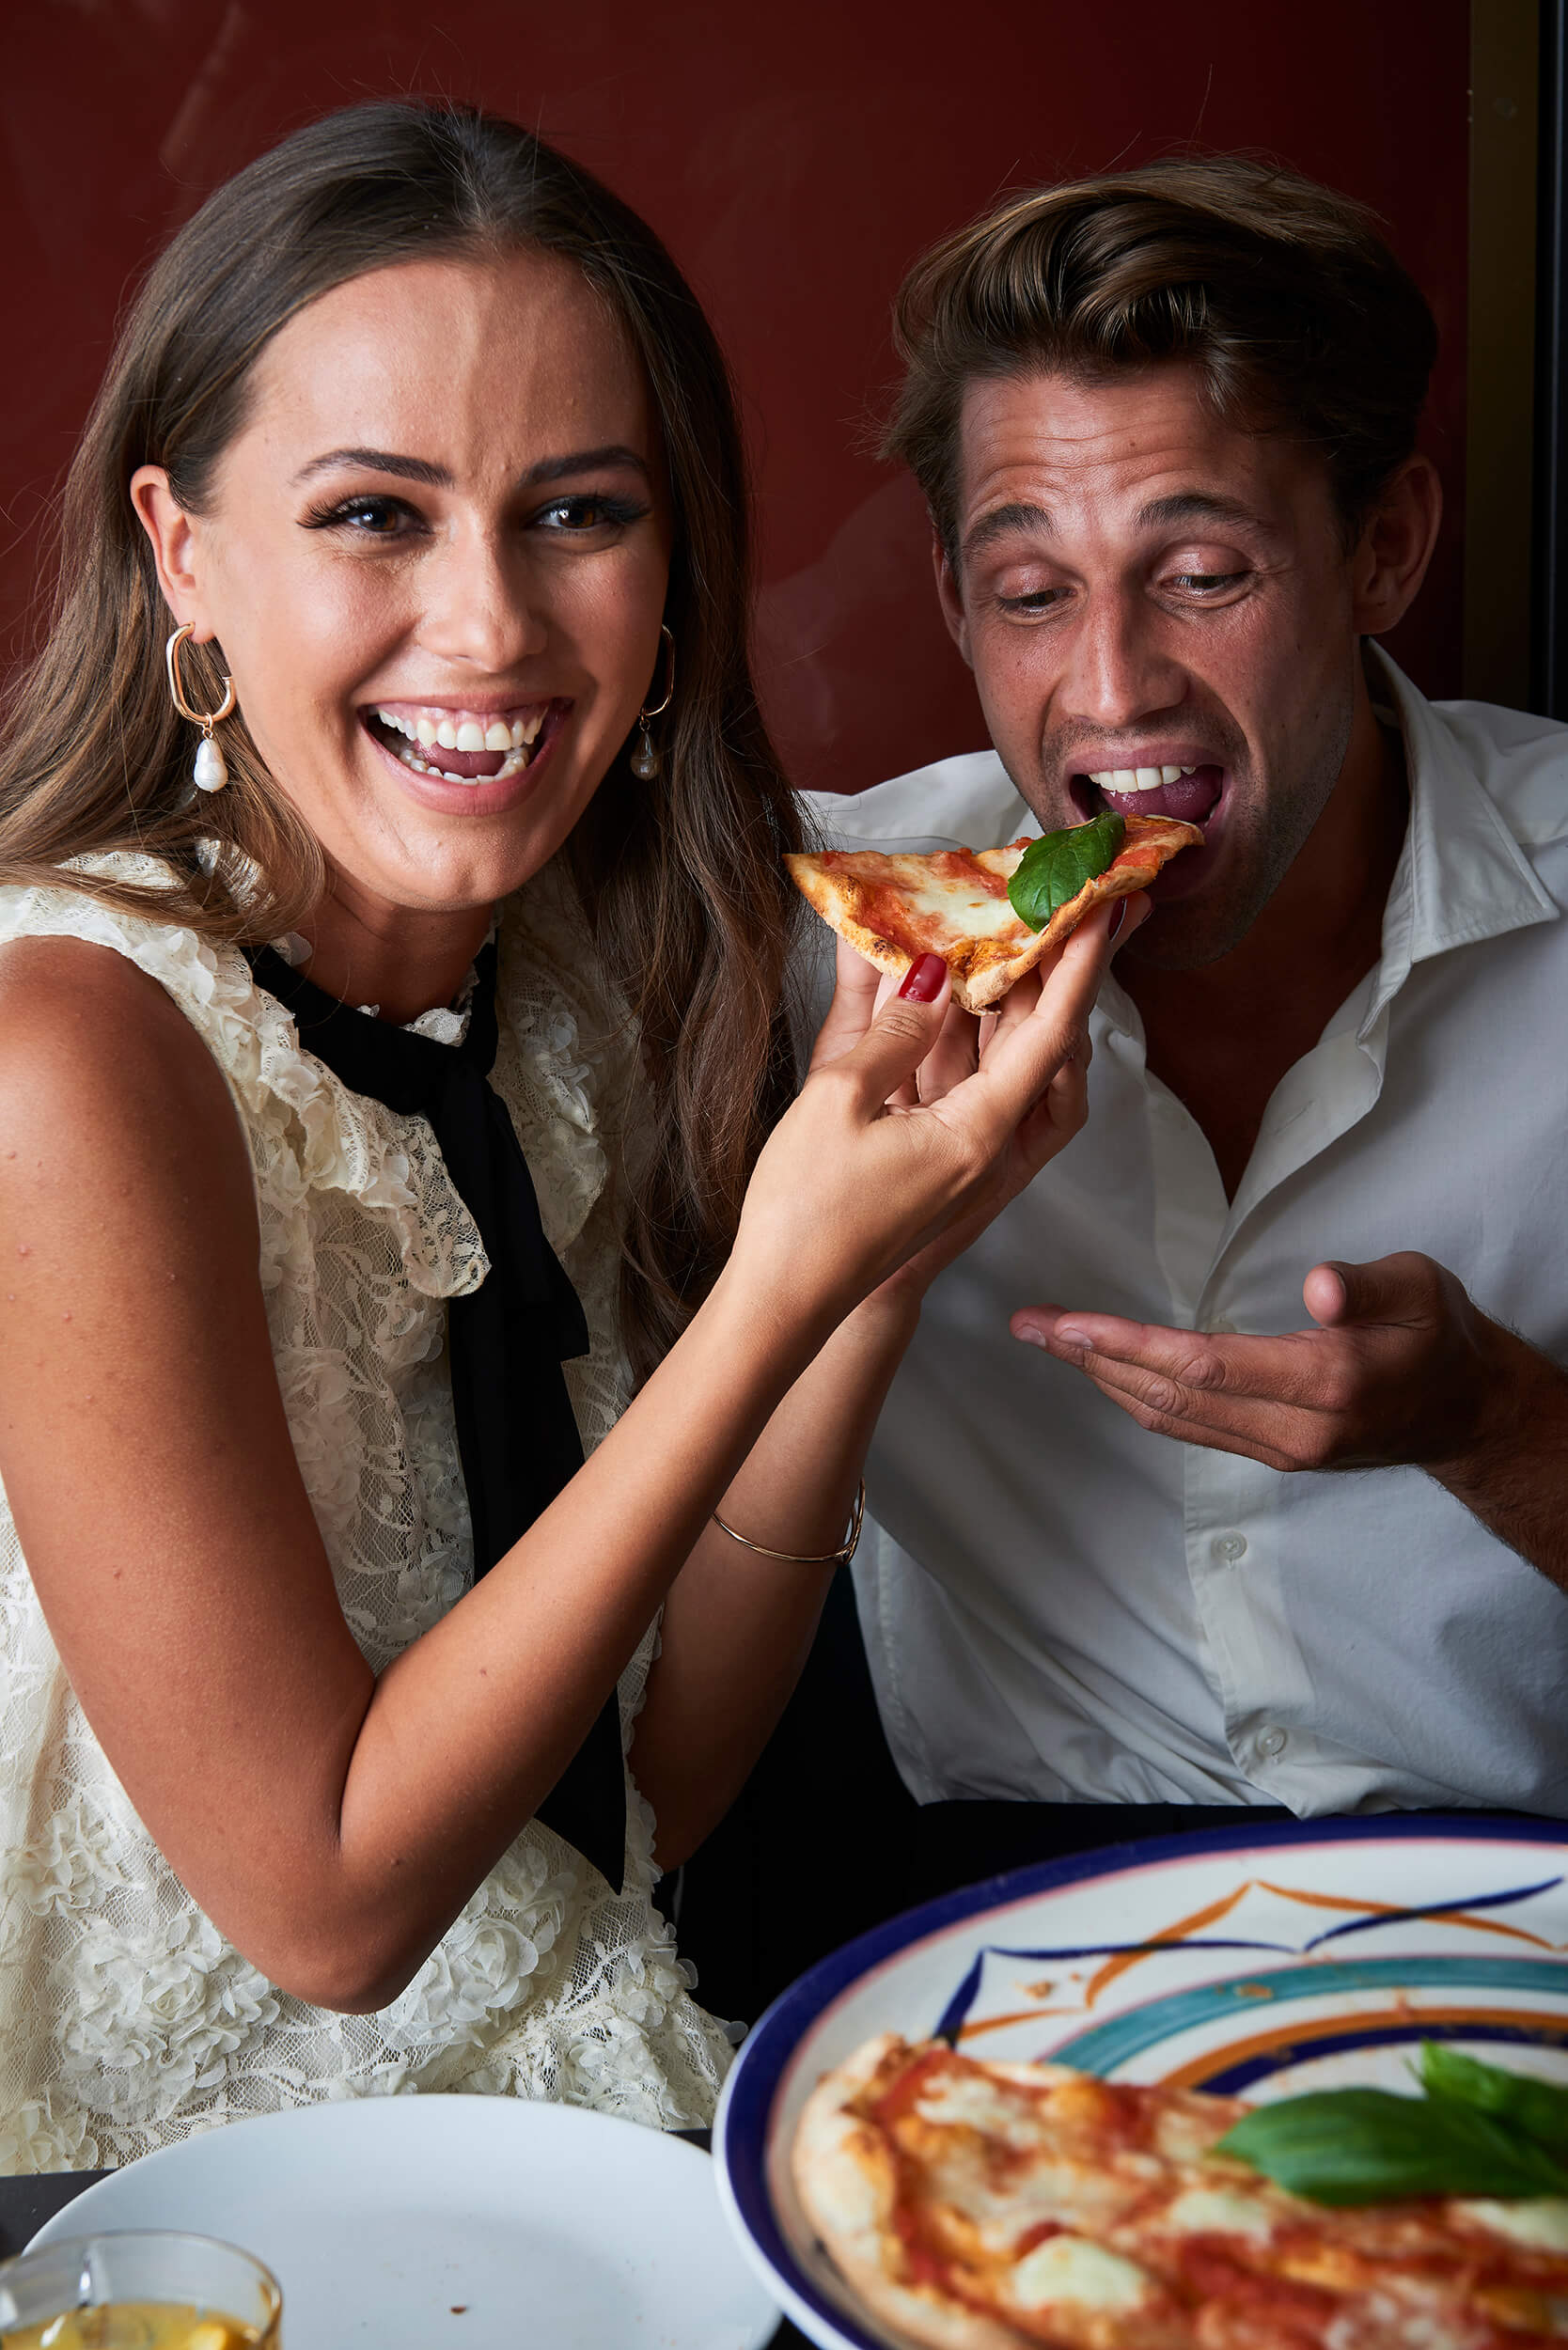 A woman offering a man a bite of pizza.